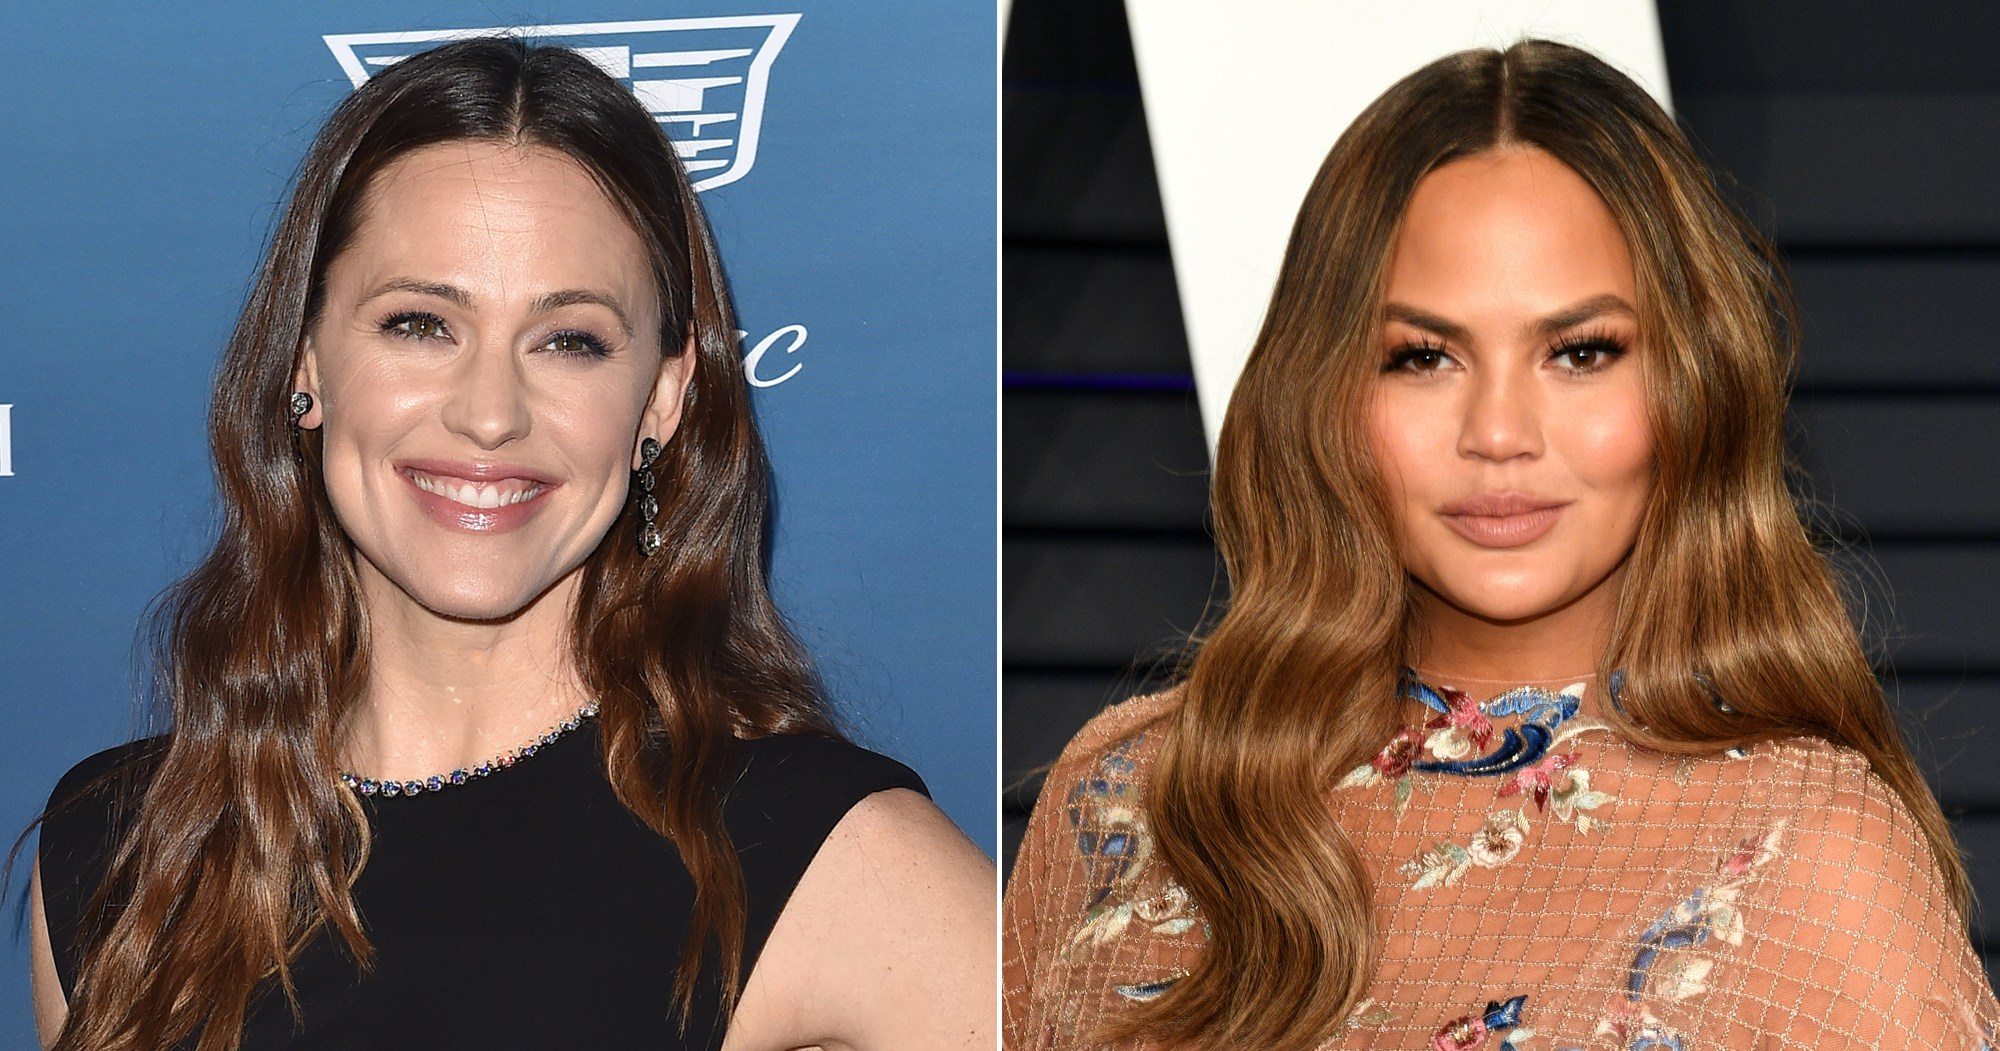 Jennifer Garner Tells Chrissy Teigen Not to Steal Her Nanny